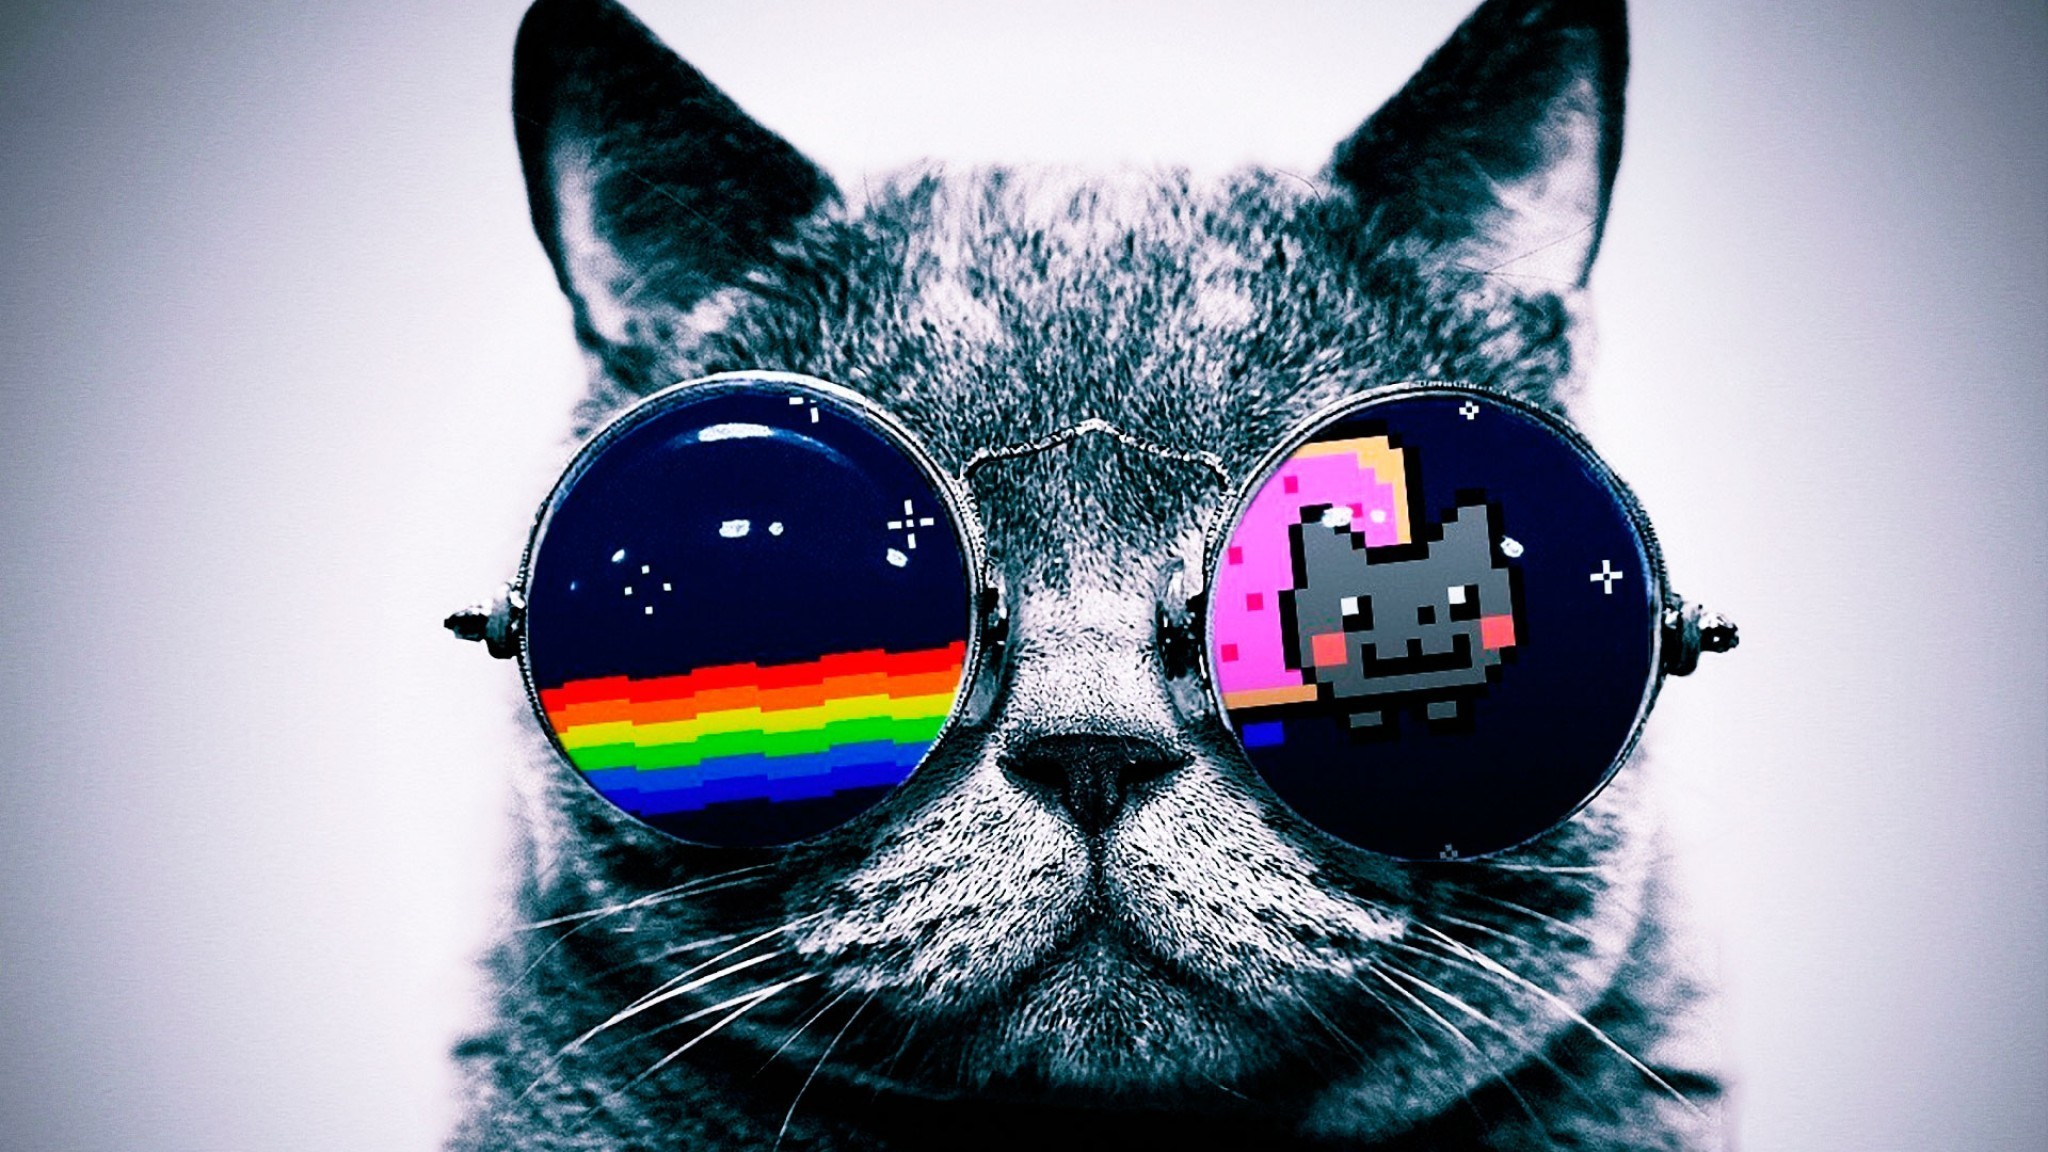 Res: 2048x1152, Animal Wallpapers. Download the following Galaxy Cat ...